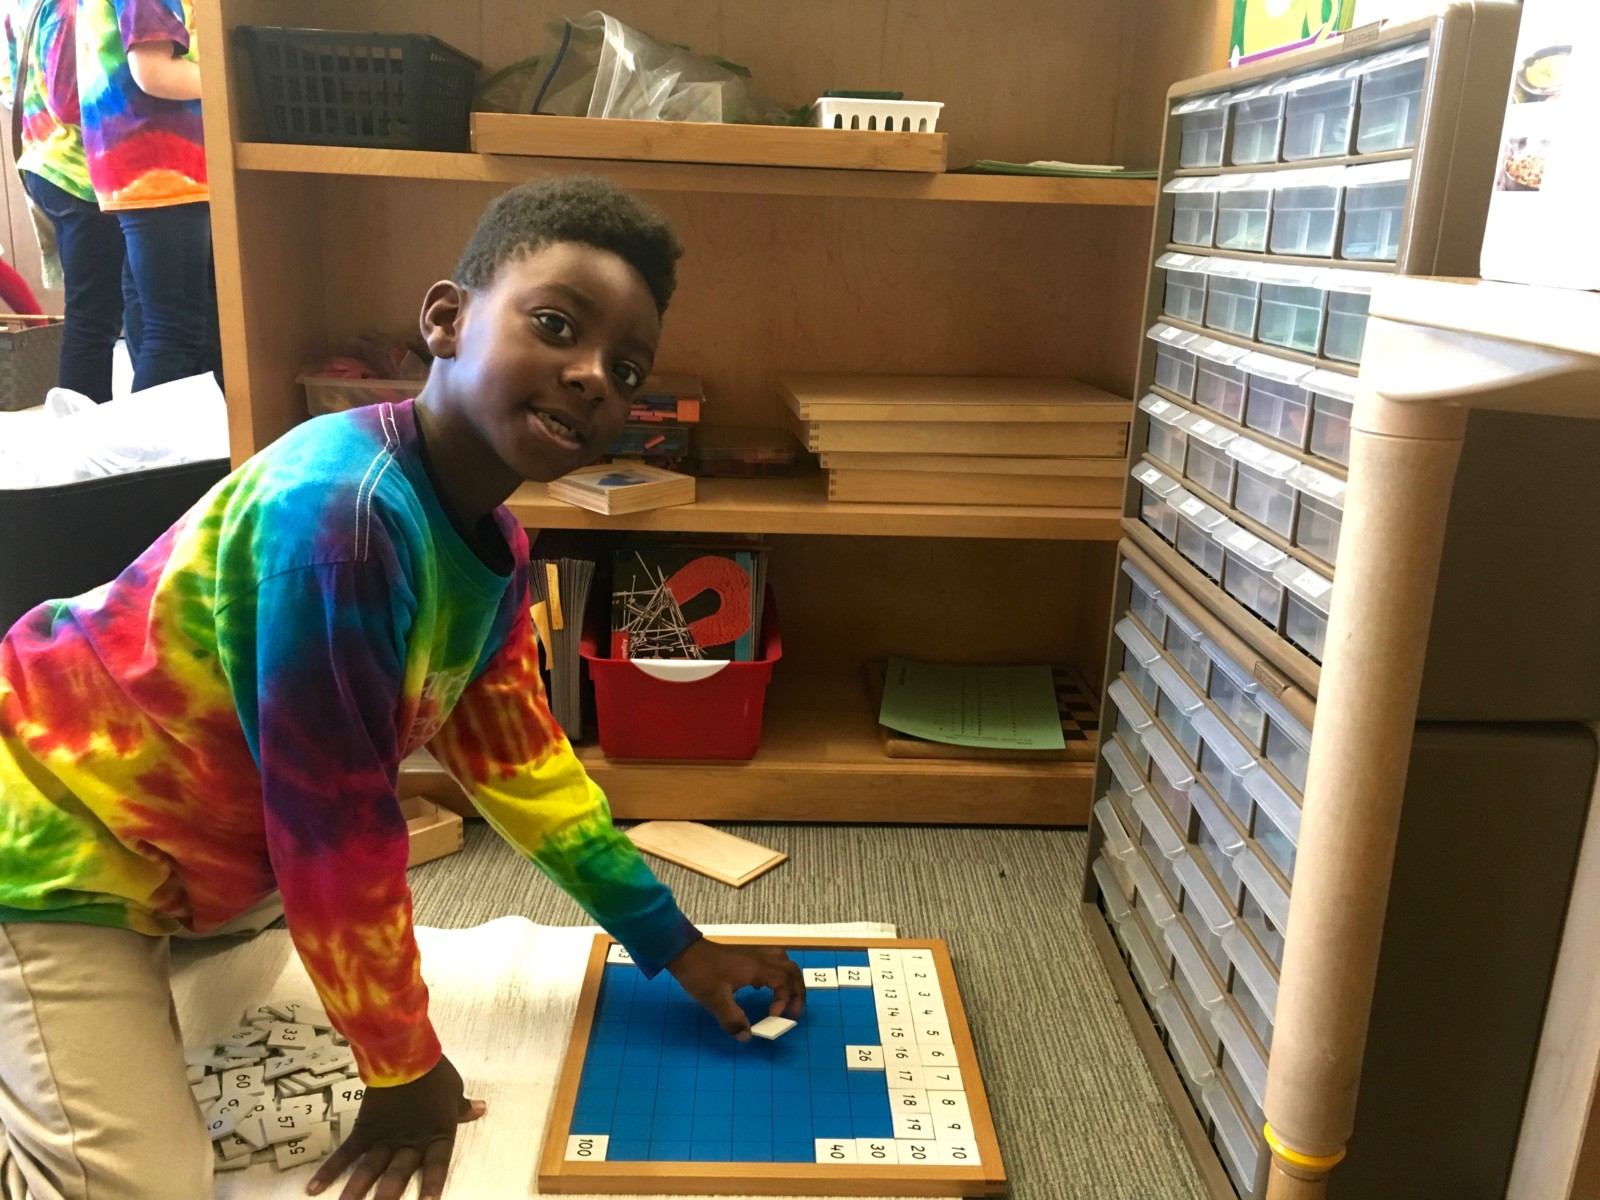 Student works on Montessori materials in the classroom